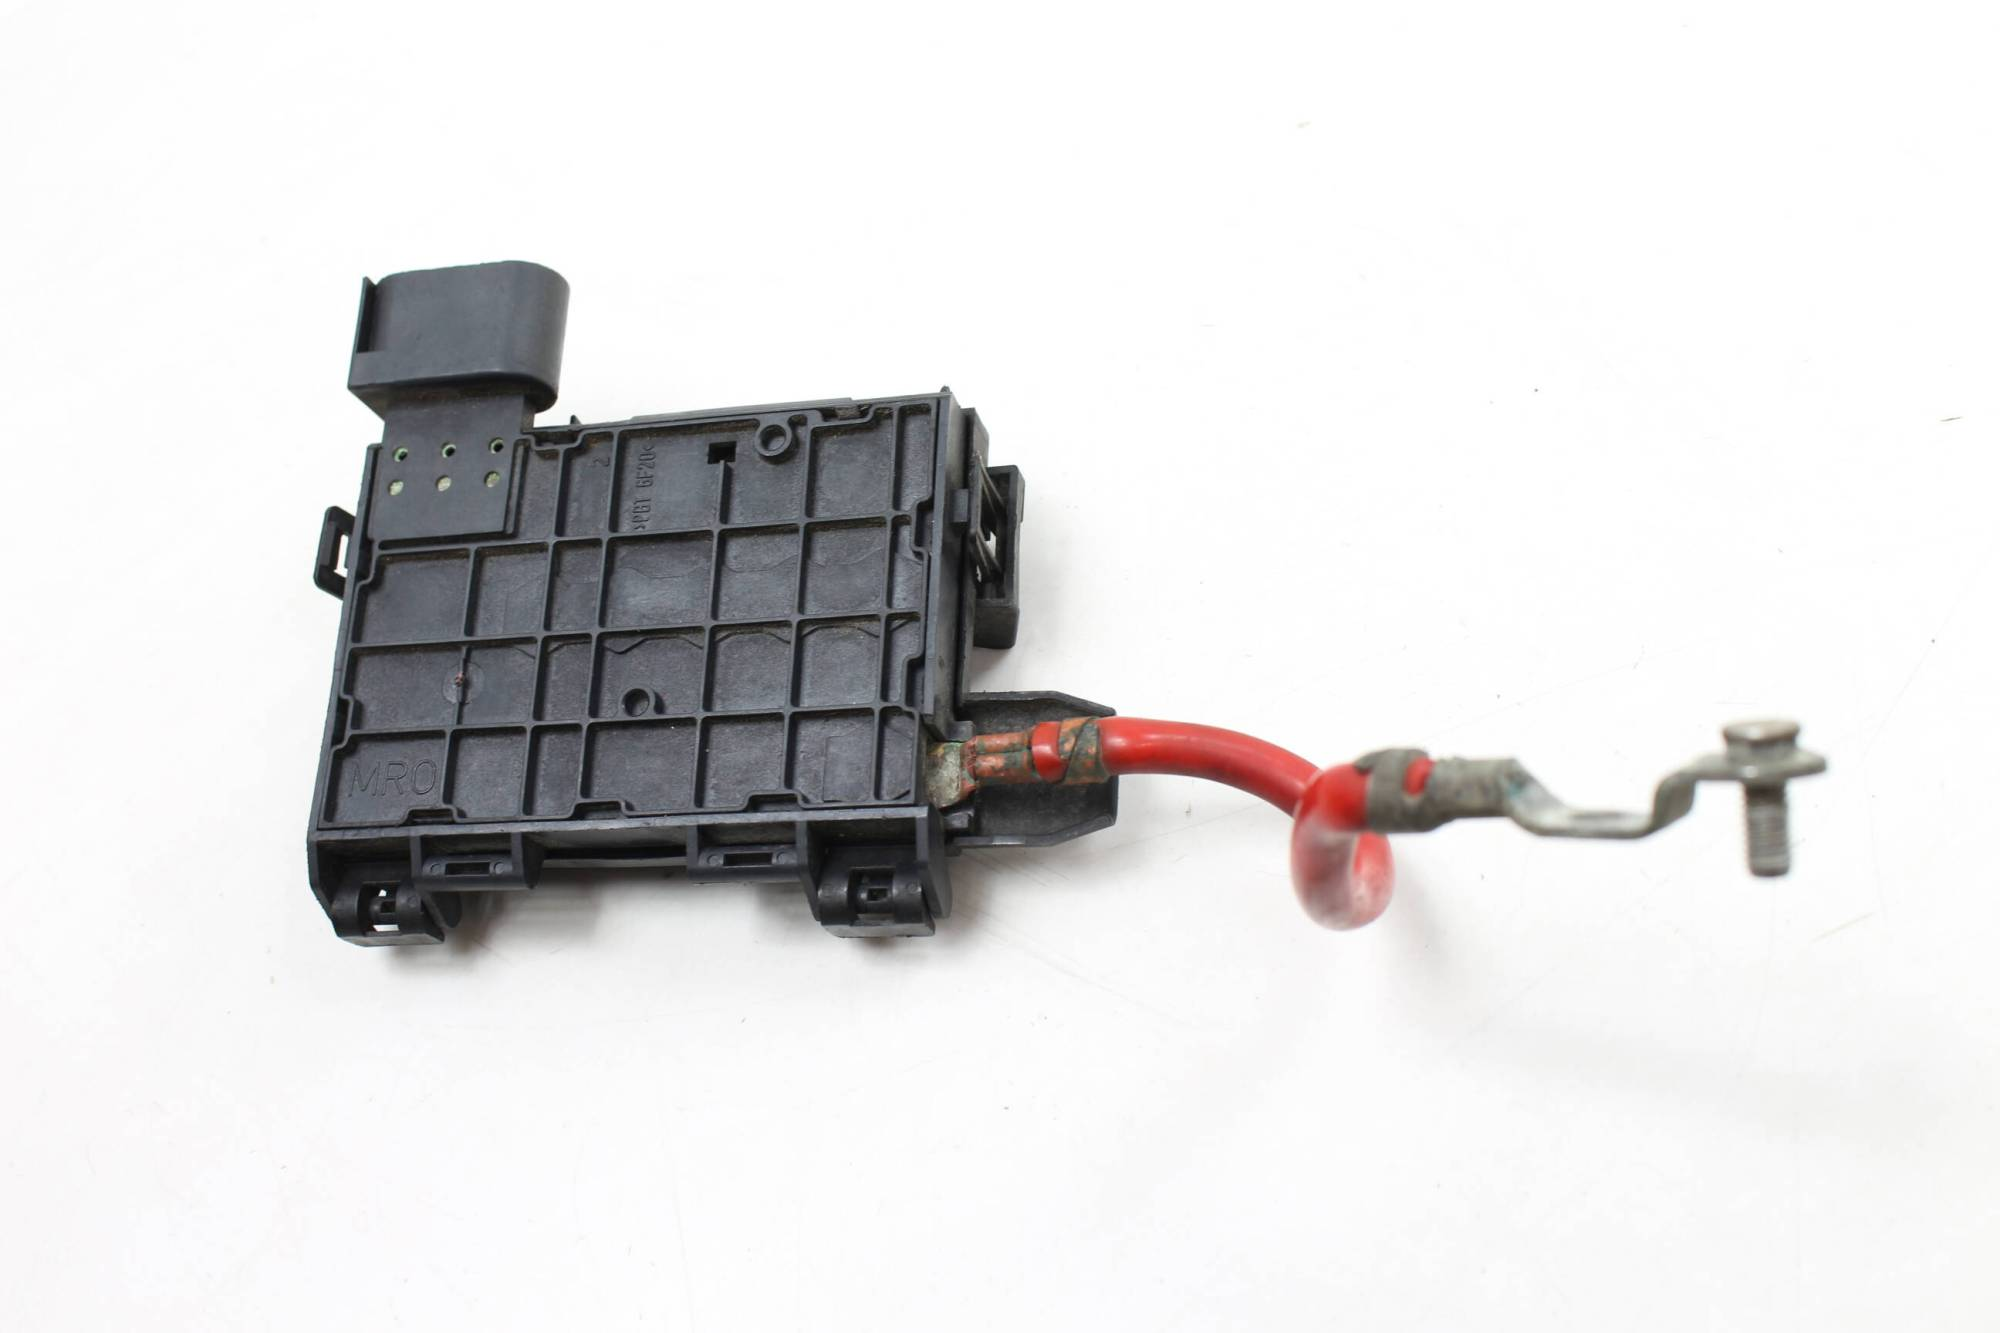 hight resolution of 1999 2000 2001 2002 2003 vw eurovan t4 fuse box holder large photo large photo large photo large photo large photo